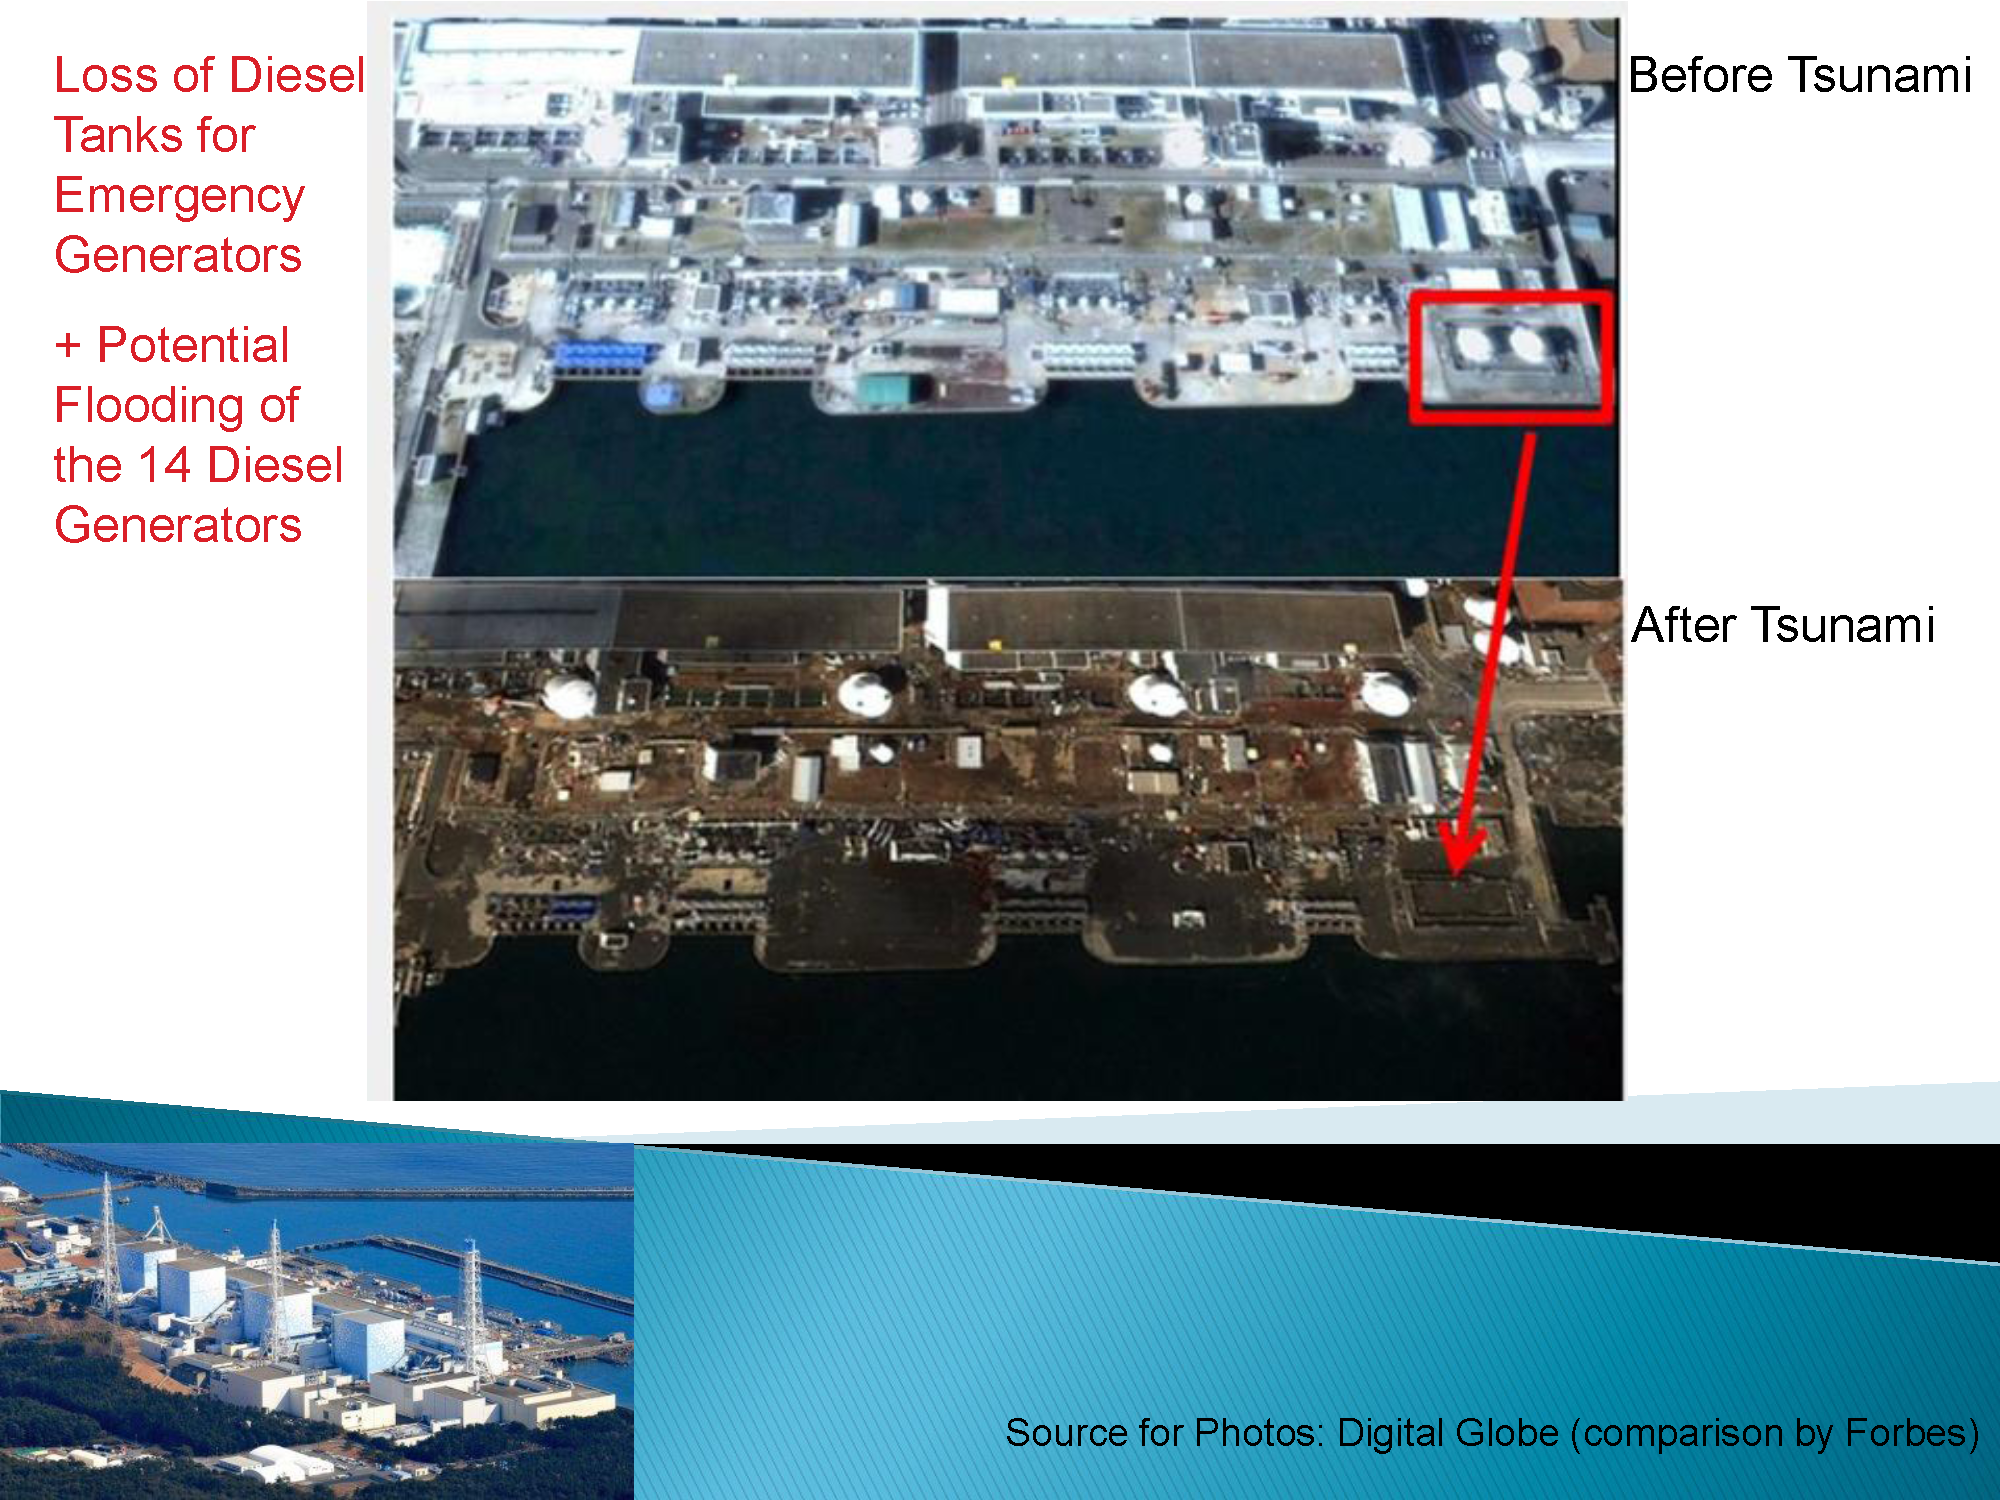 Fukushima1_Technical_Perspective_LBL_EEDT_04052011-1_Page_10